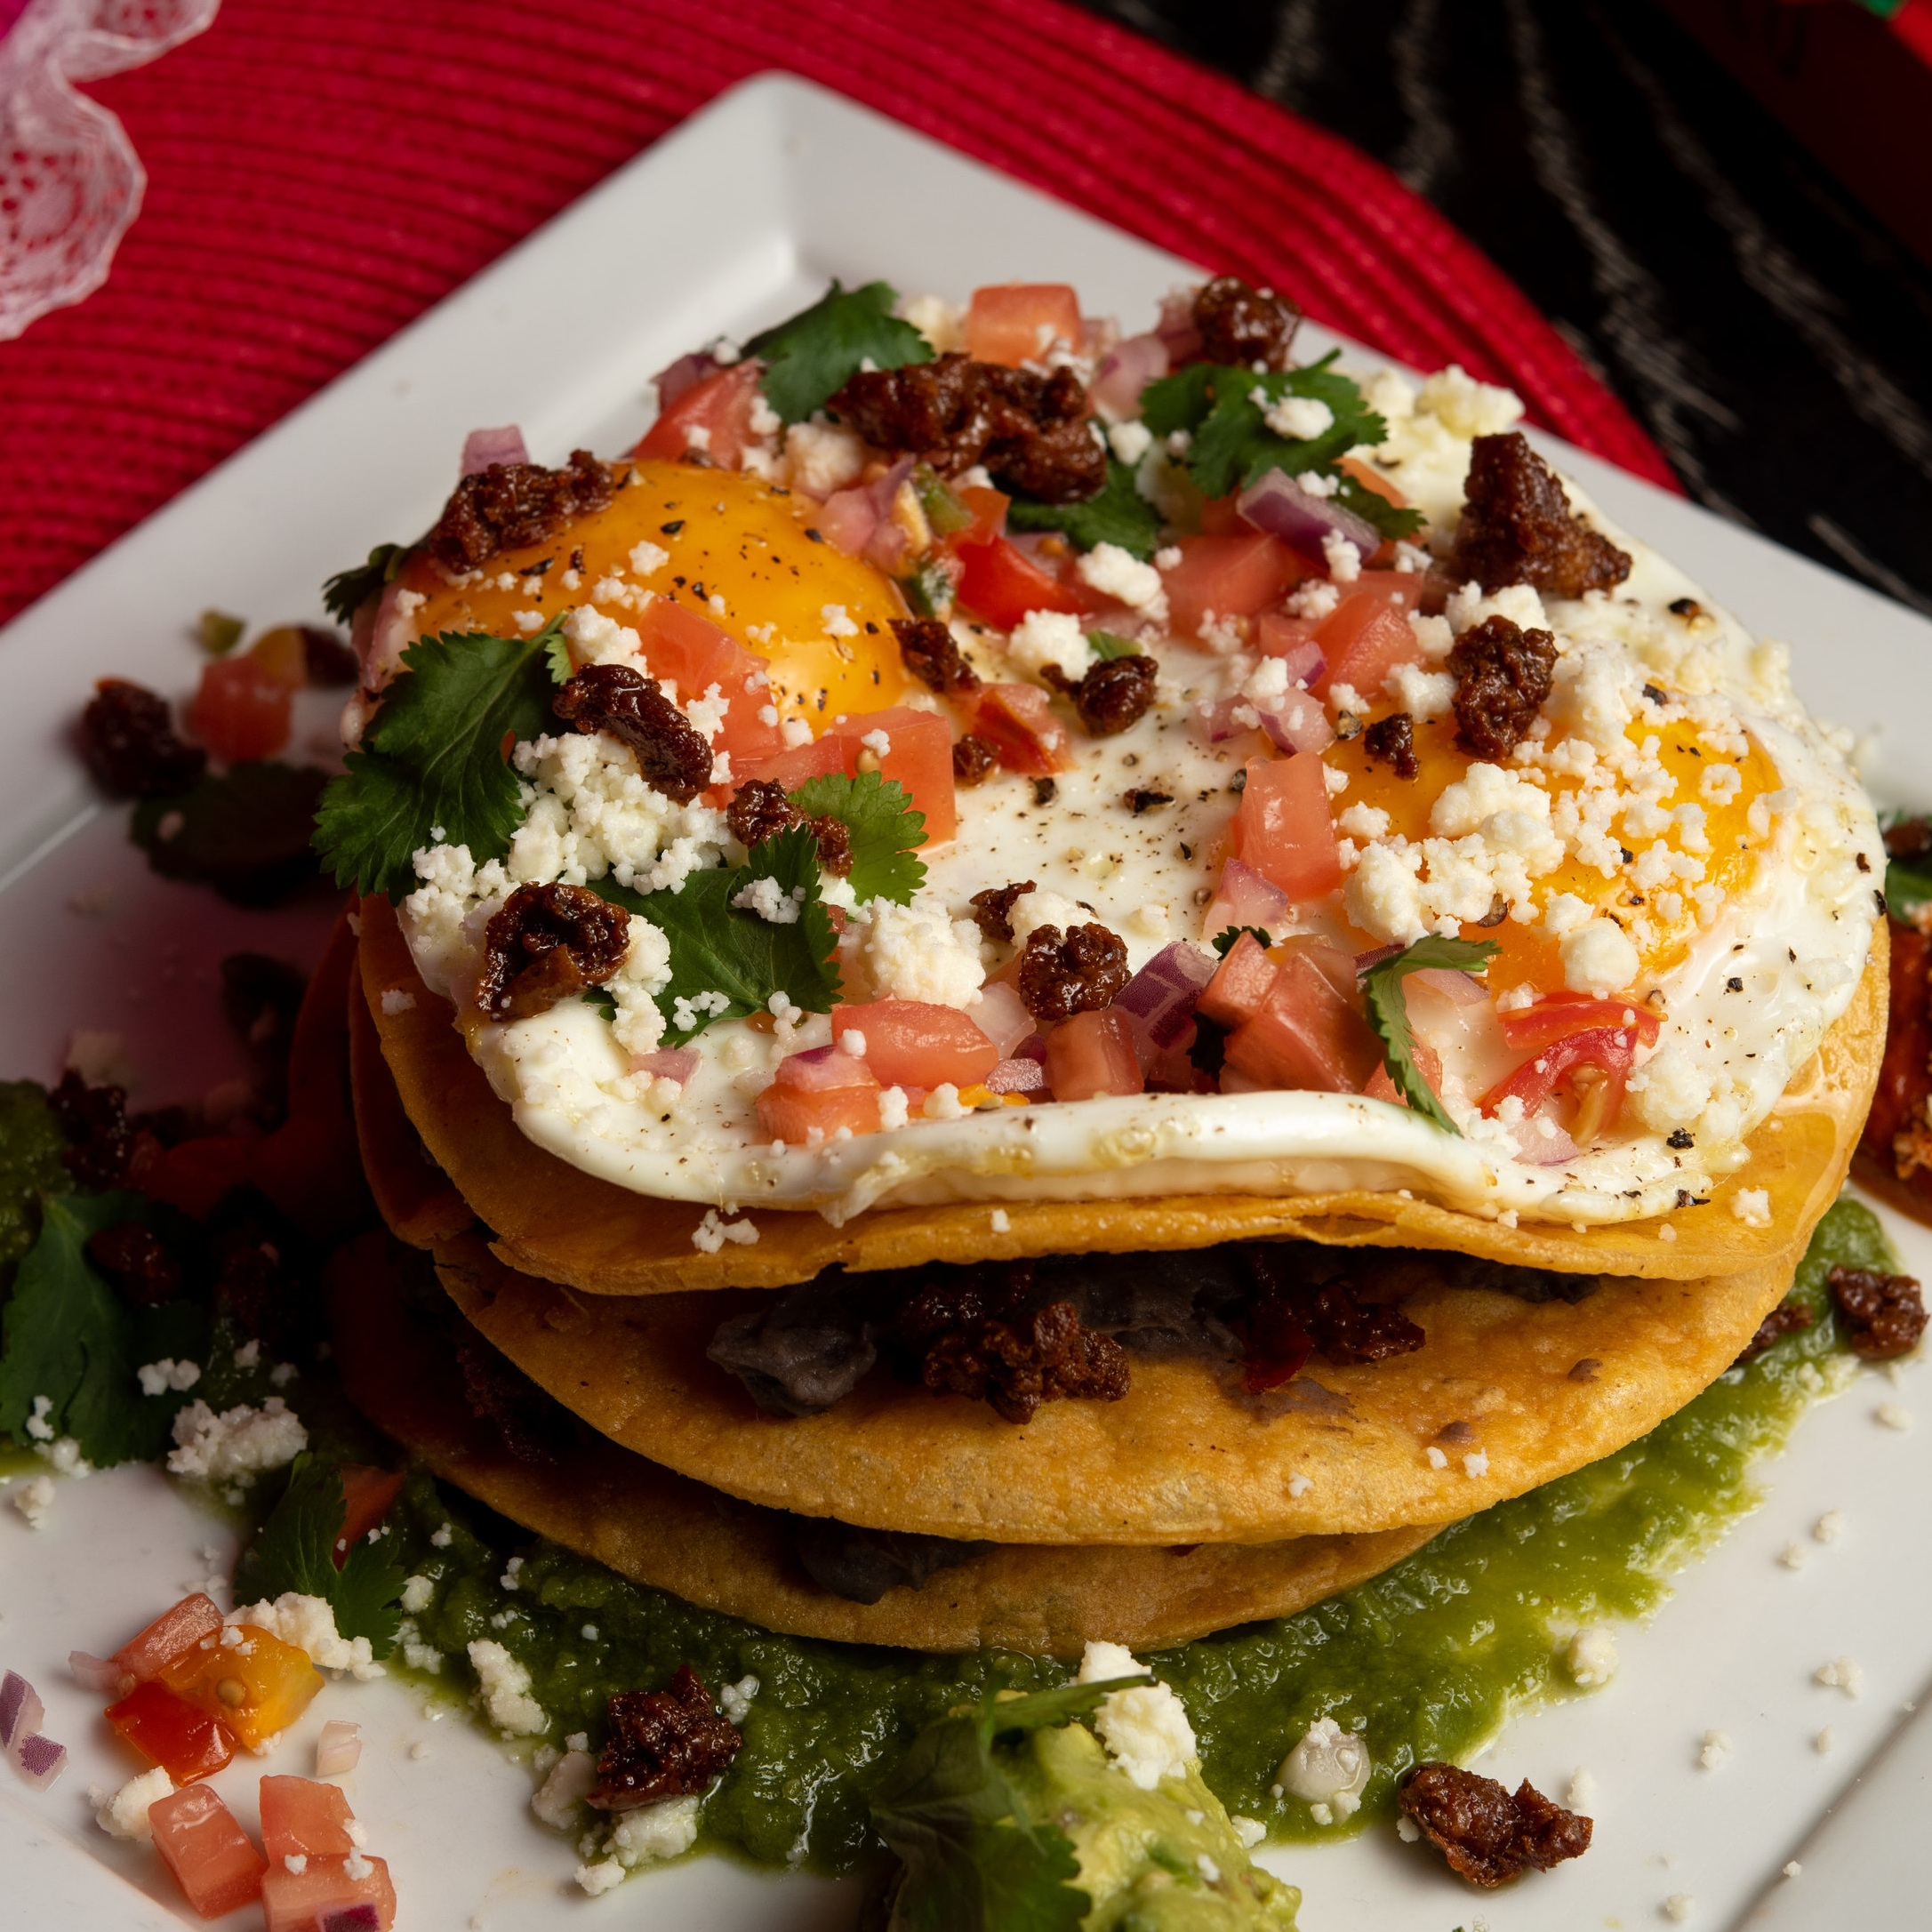 The Norm at Brooklyn Museum - BREAKFAST TOSTADAbeans, pico de gallo, lettuce, cream, fried egg©Chip Klose